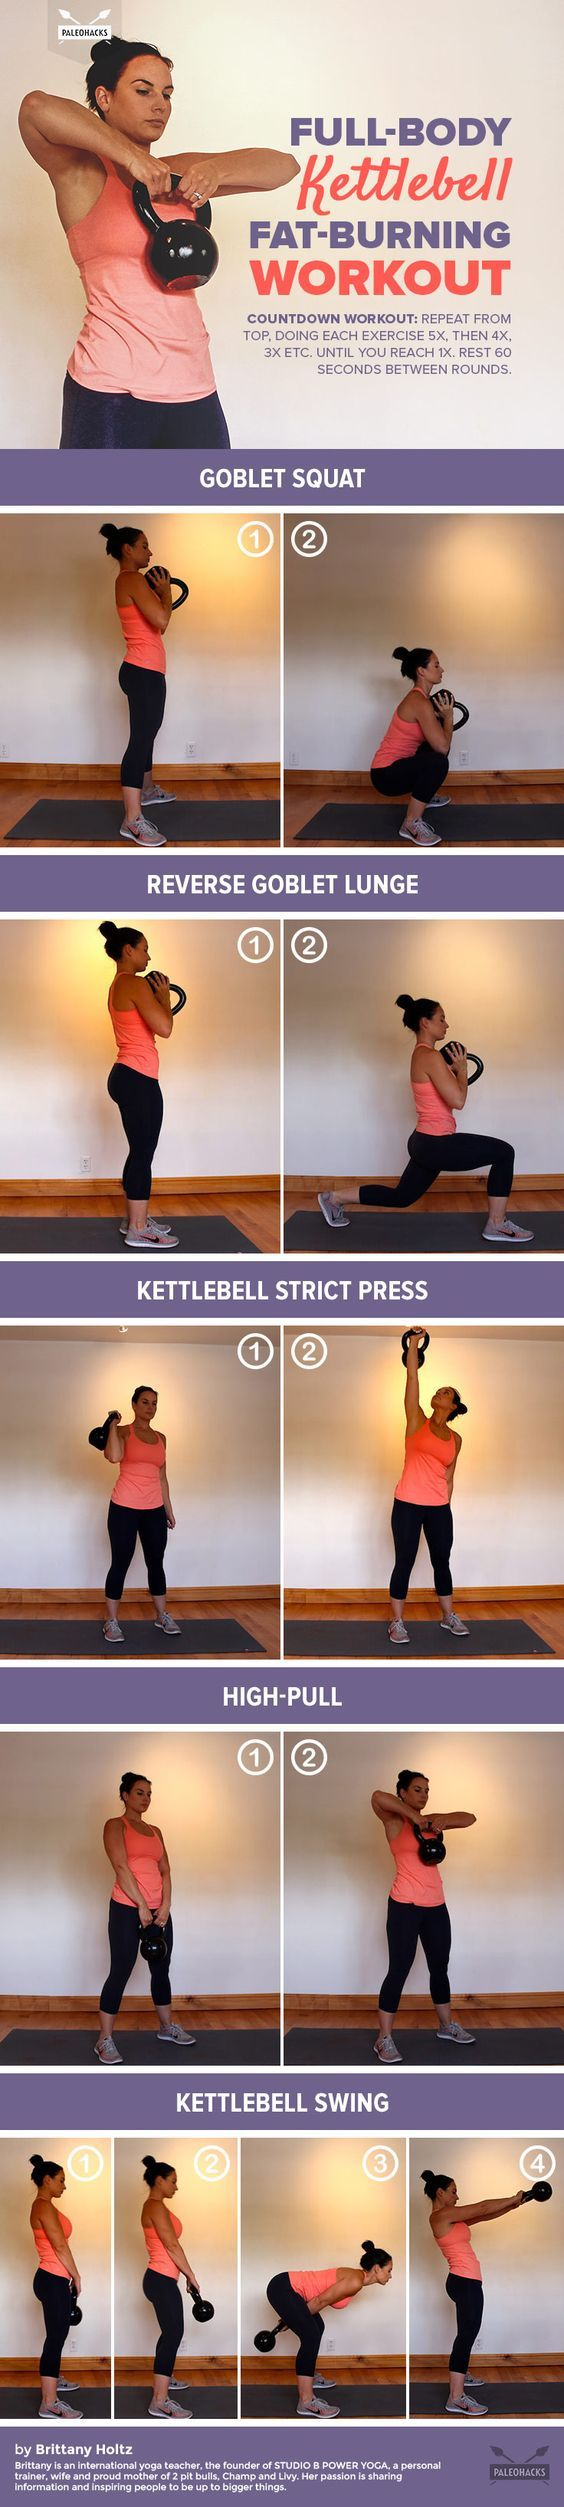 Full-Body Kettlebell Fat-Burning Workout For -health, -recipes, -free challenge groups, go to my website or message me... www.Beachbodycoach.com/mrdunn24 https://www.facebook.com/melissa.shofrothdunnF